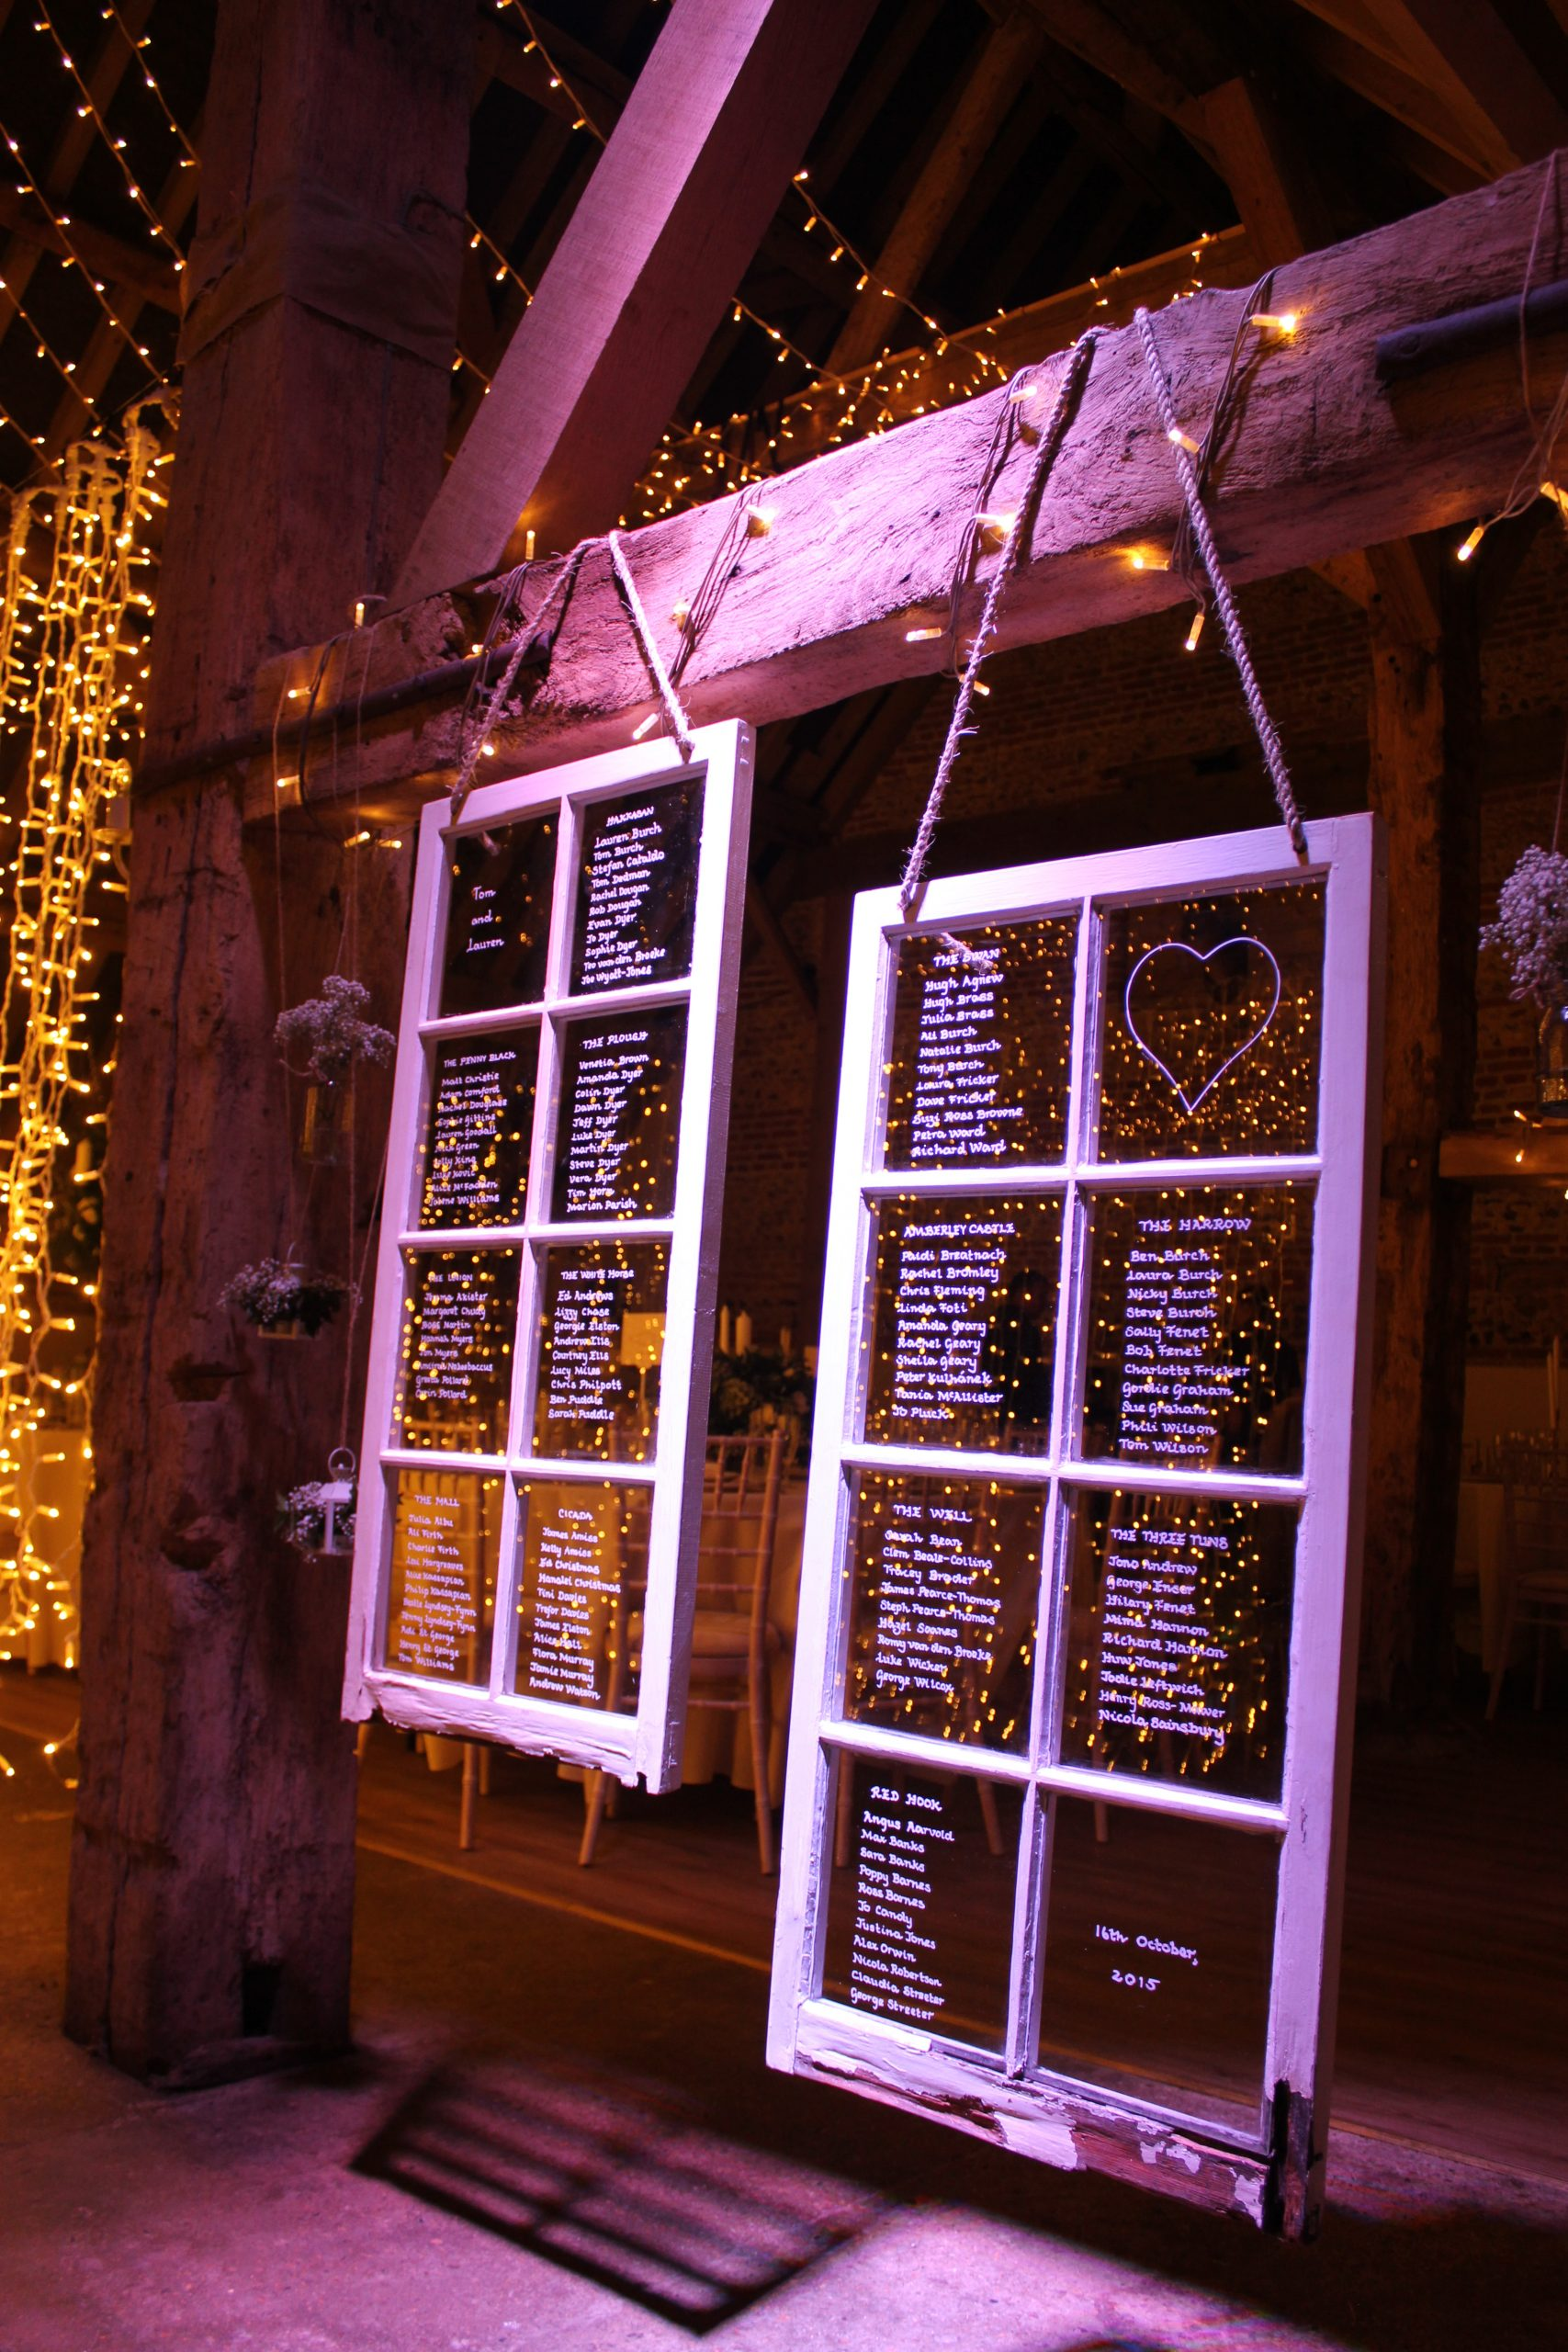 Two window frames with a wedding tableplan written on them hanging from the beam of a barn ceiling. There are strings of fairy ligts around.